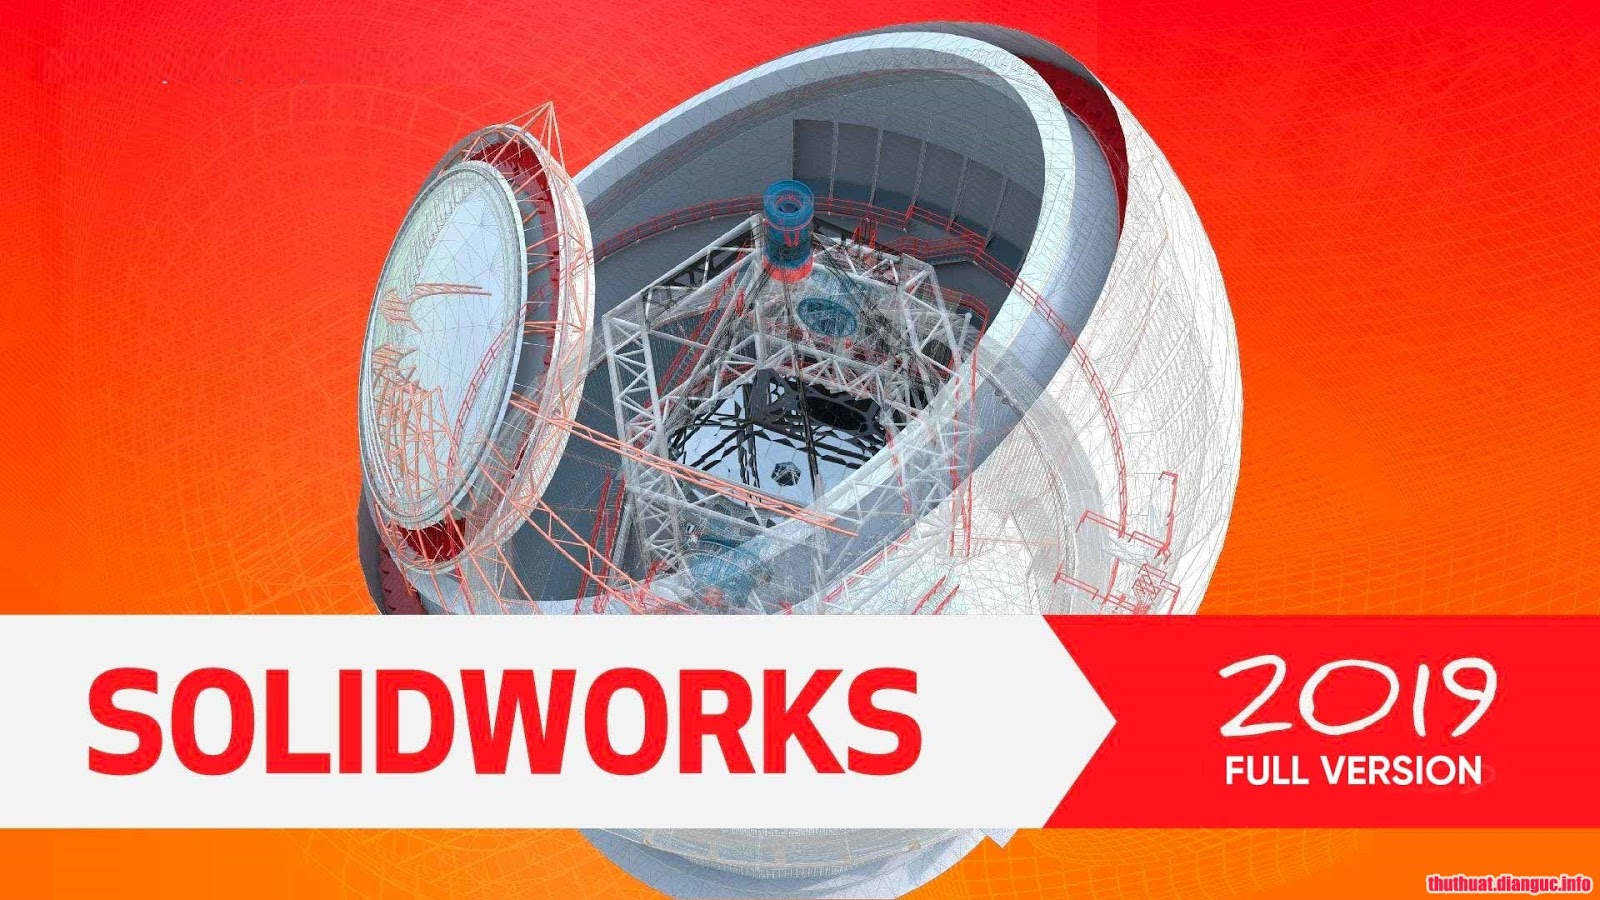 Tải Solidworks 2010, 2011, 2012, 2013, 2014, 2015, 2016, 2017, 2018, 2019 Full Active